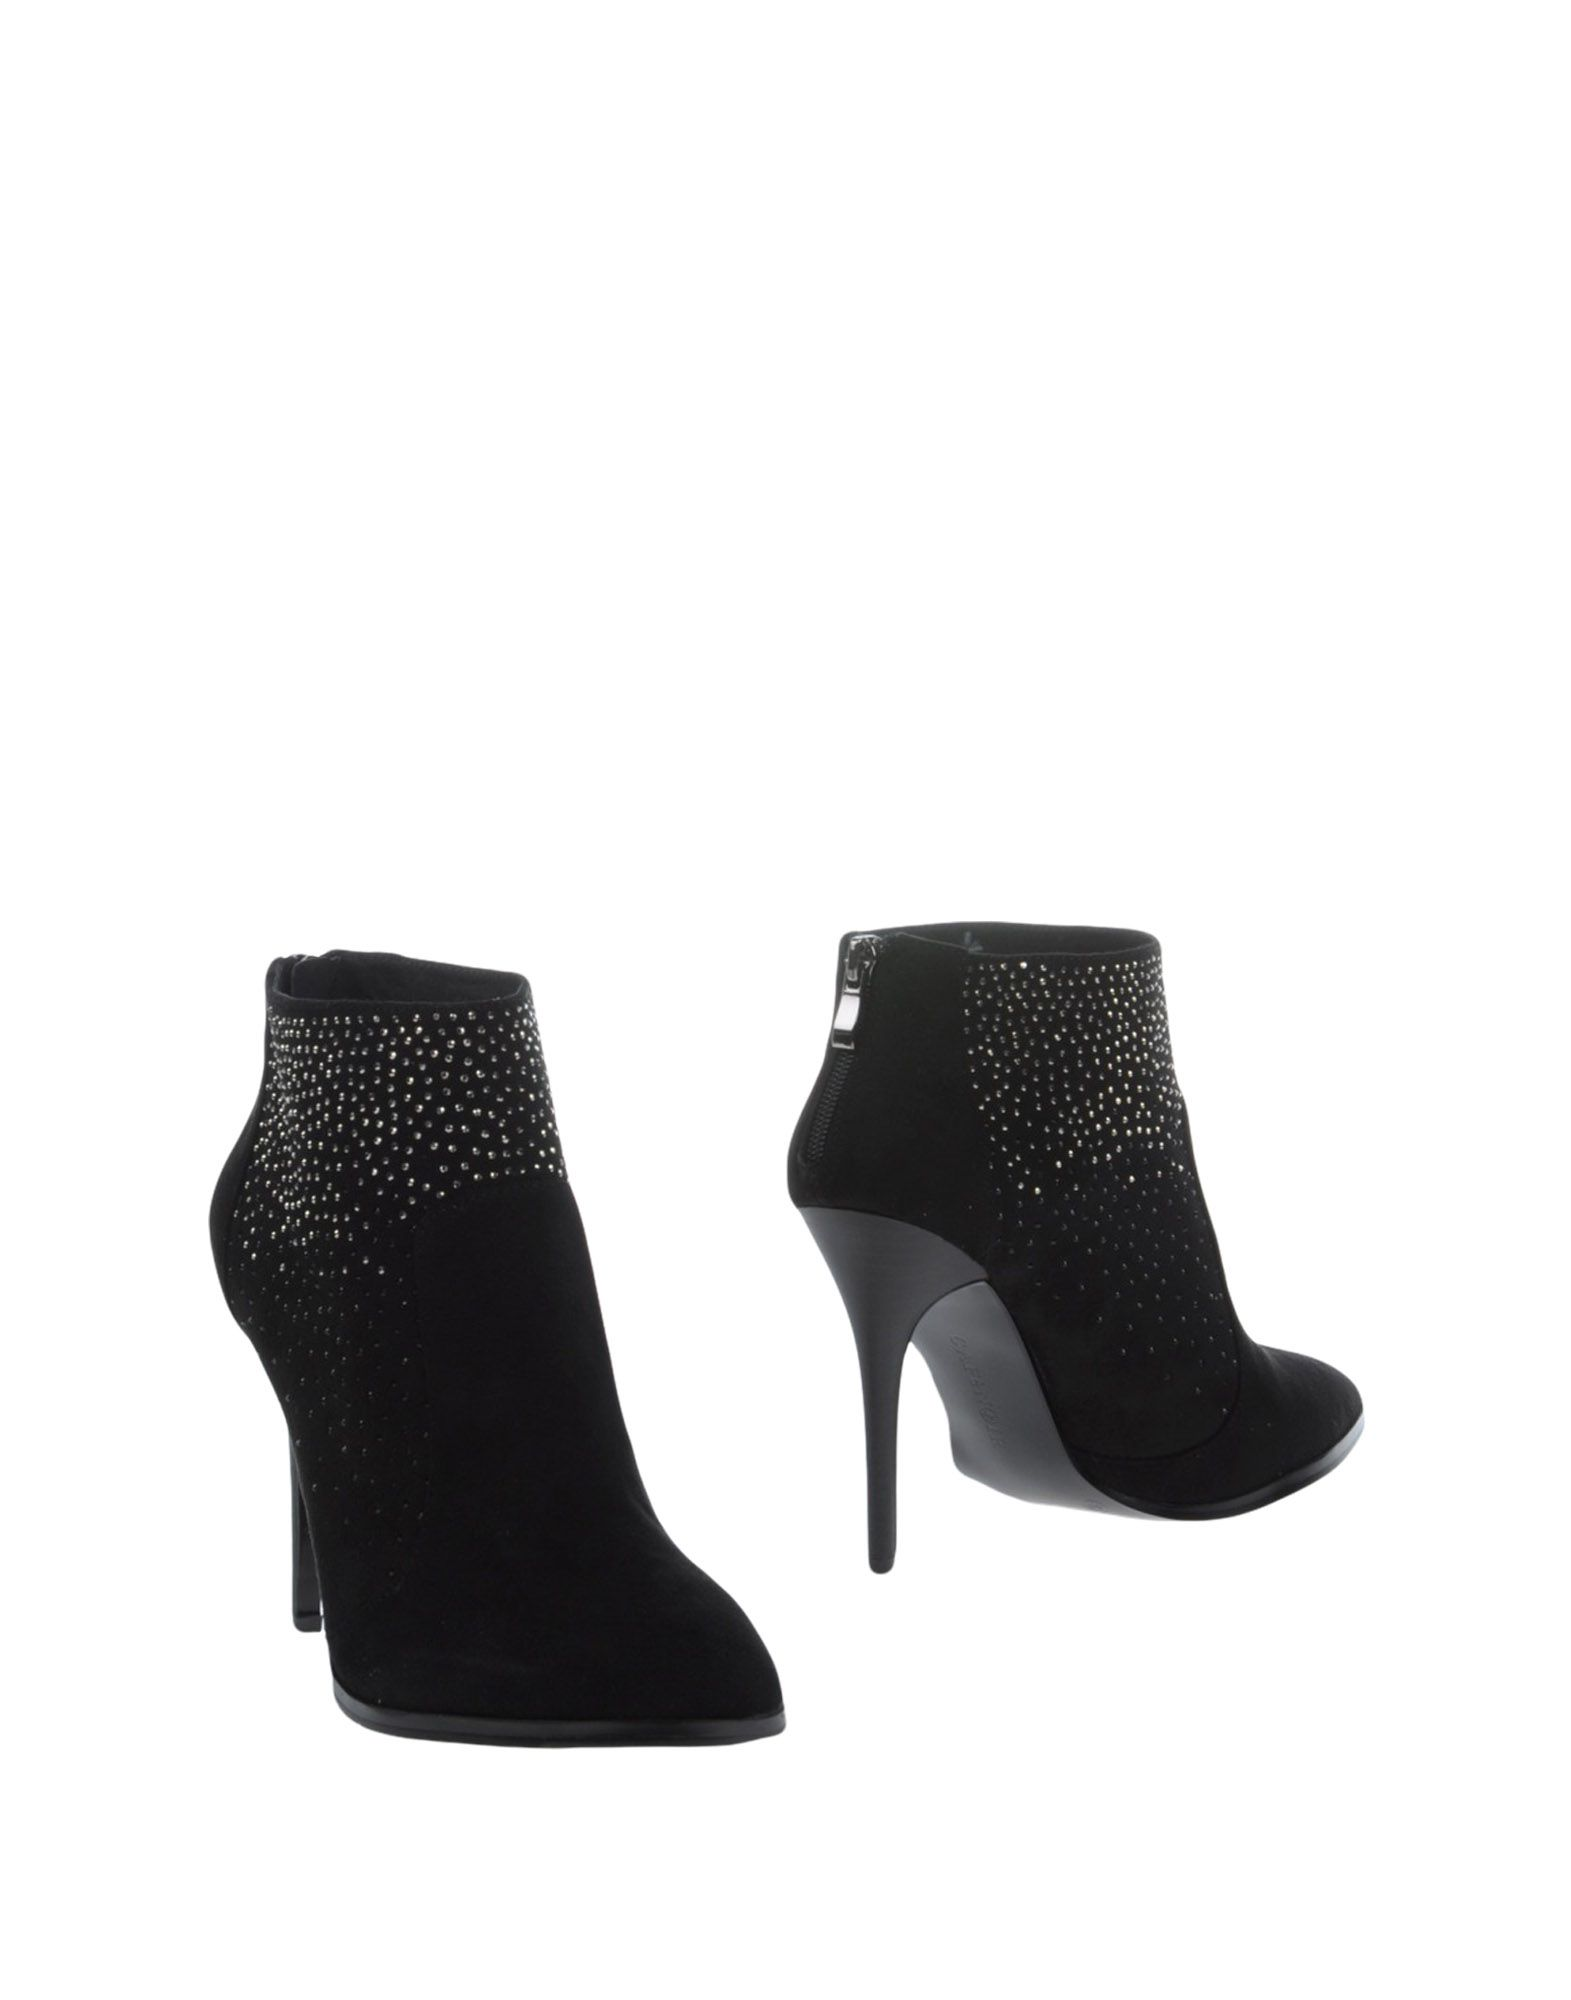 Bottine Cafènoir Femme - Bottines Cafènoir sur